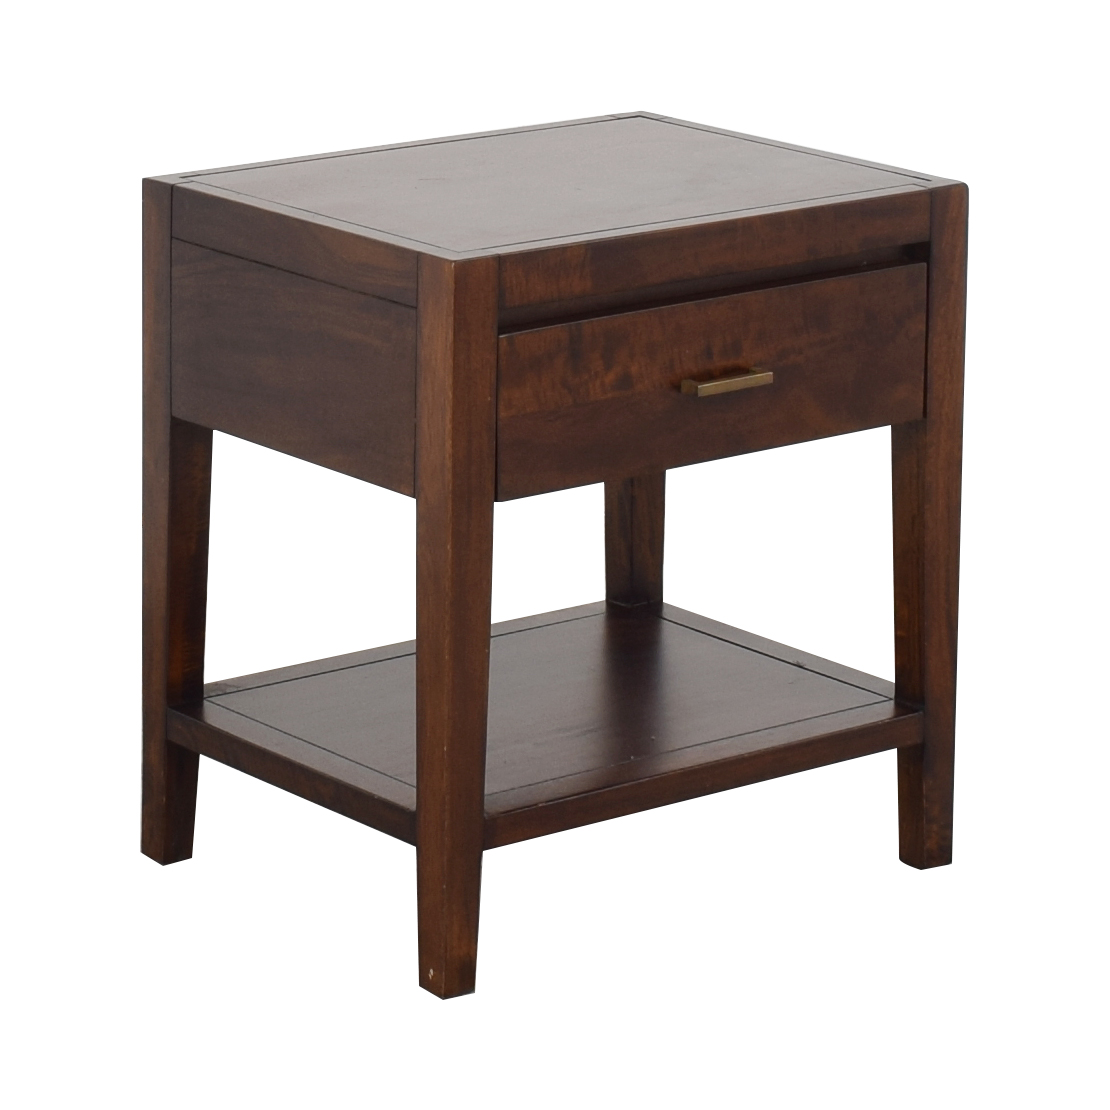 buy Crate & Barrel Dawson Nightstand Crate & Barrel Tables